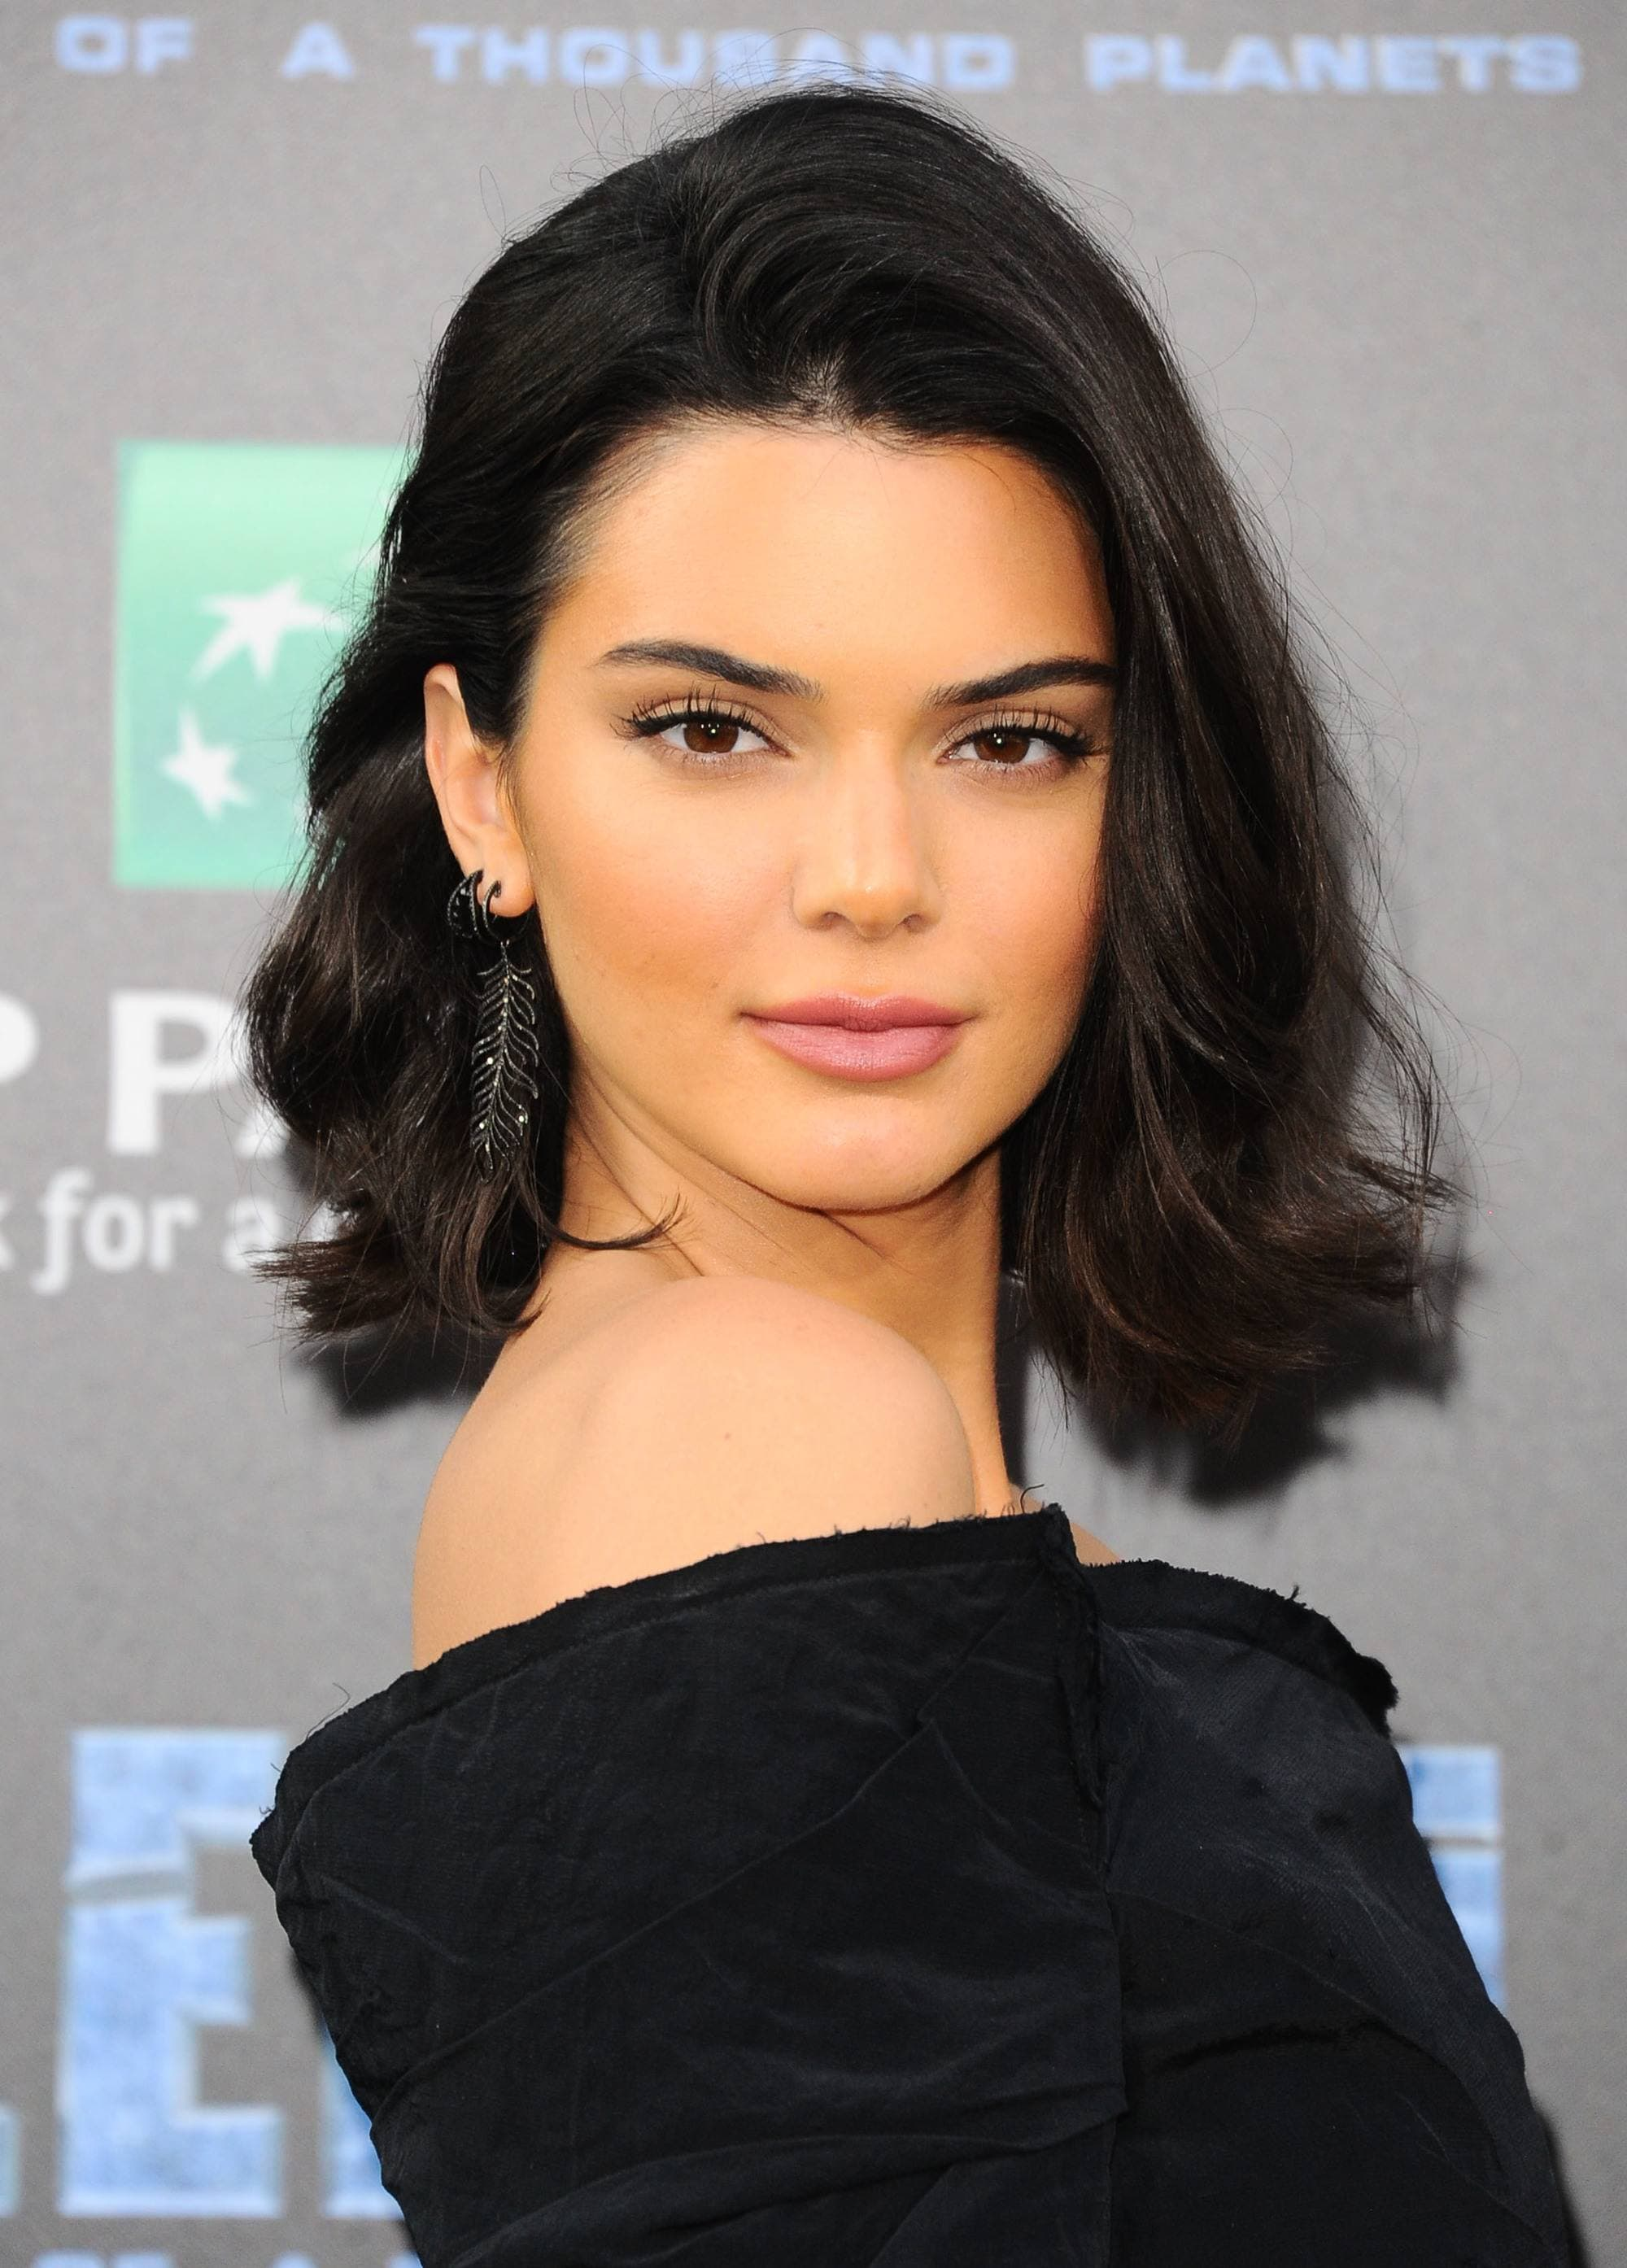 Medium hairstyles for thick hair: Kendall Jenner with dark brown long bob length hair with flicked-out layers, wearing an off shoulder black dress